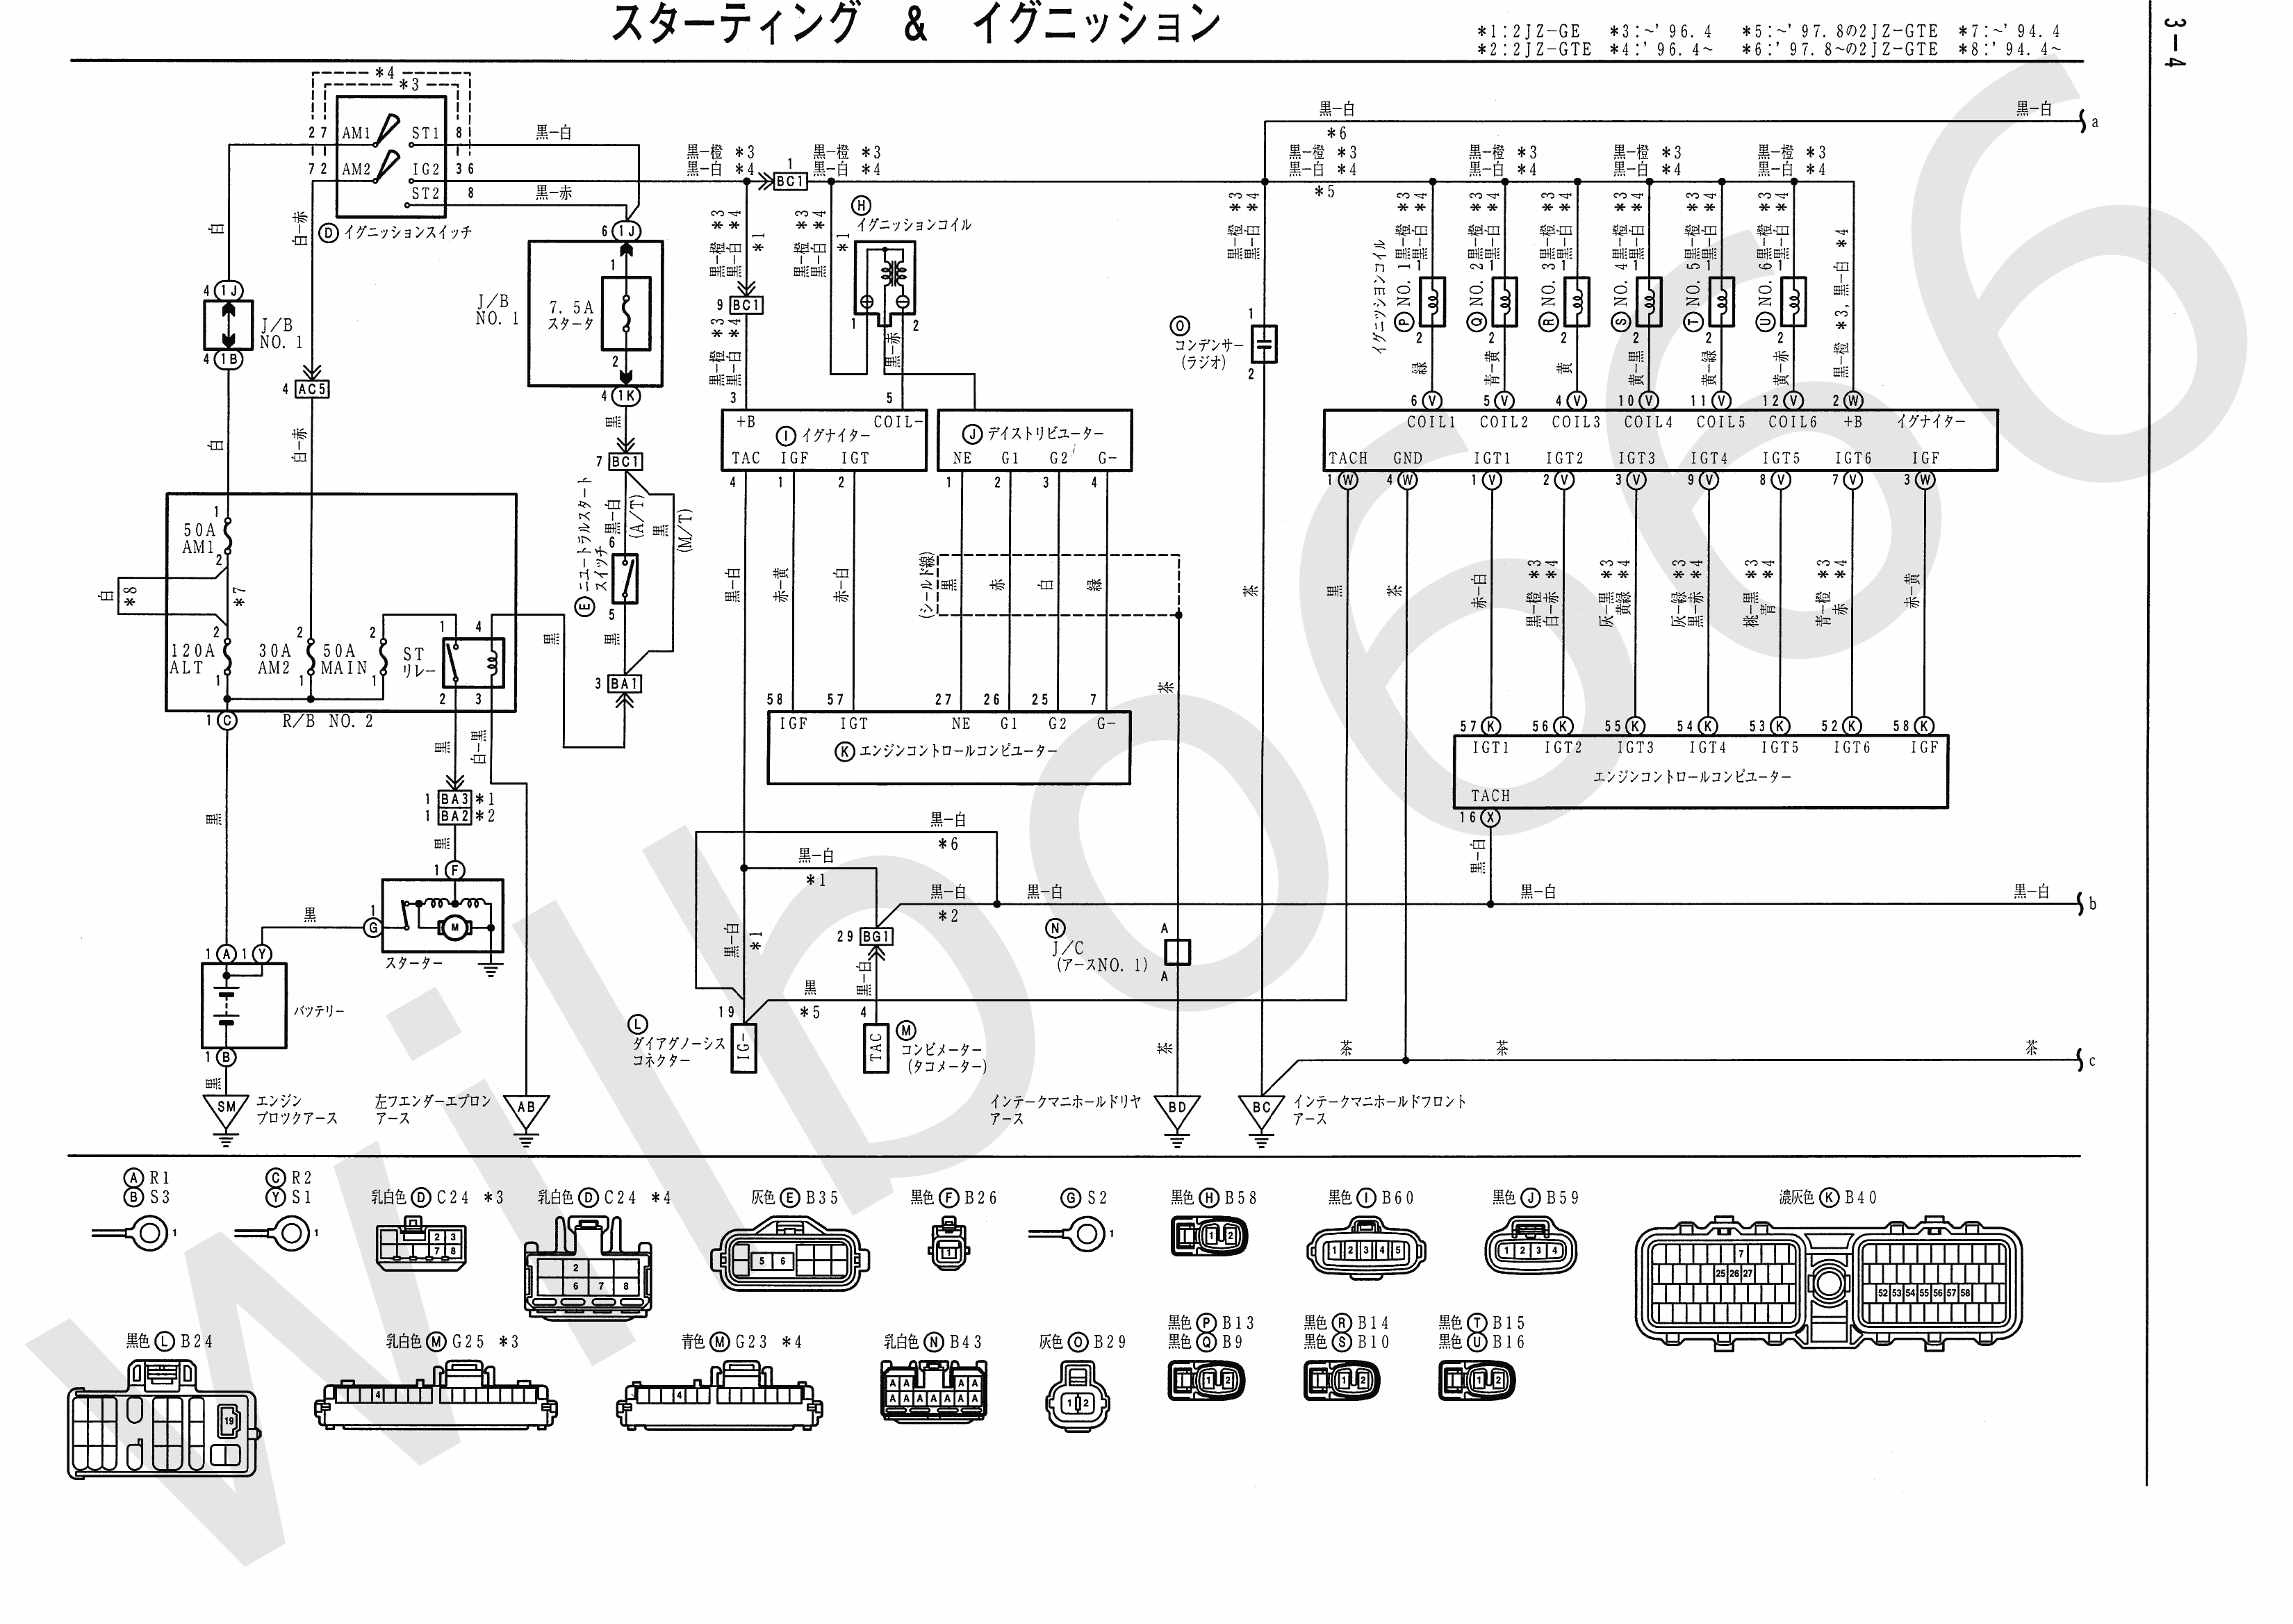 JZA80 Electrical Wiring Diagram 6742505 3 4 wilbo666 2jz gte vvti jza80 supra engine wiring TPS Adapter Wire at eliteediting.co